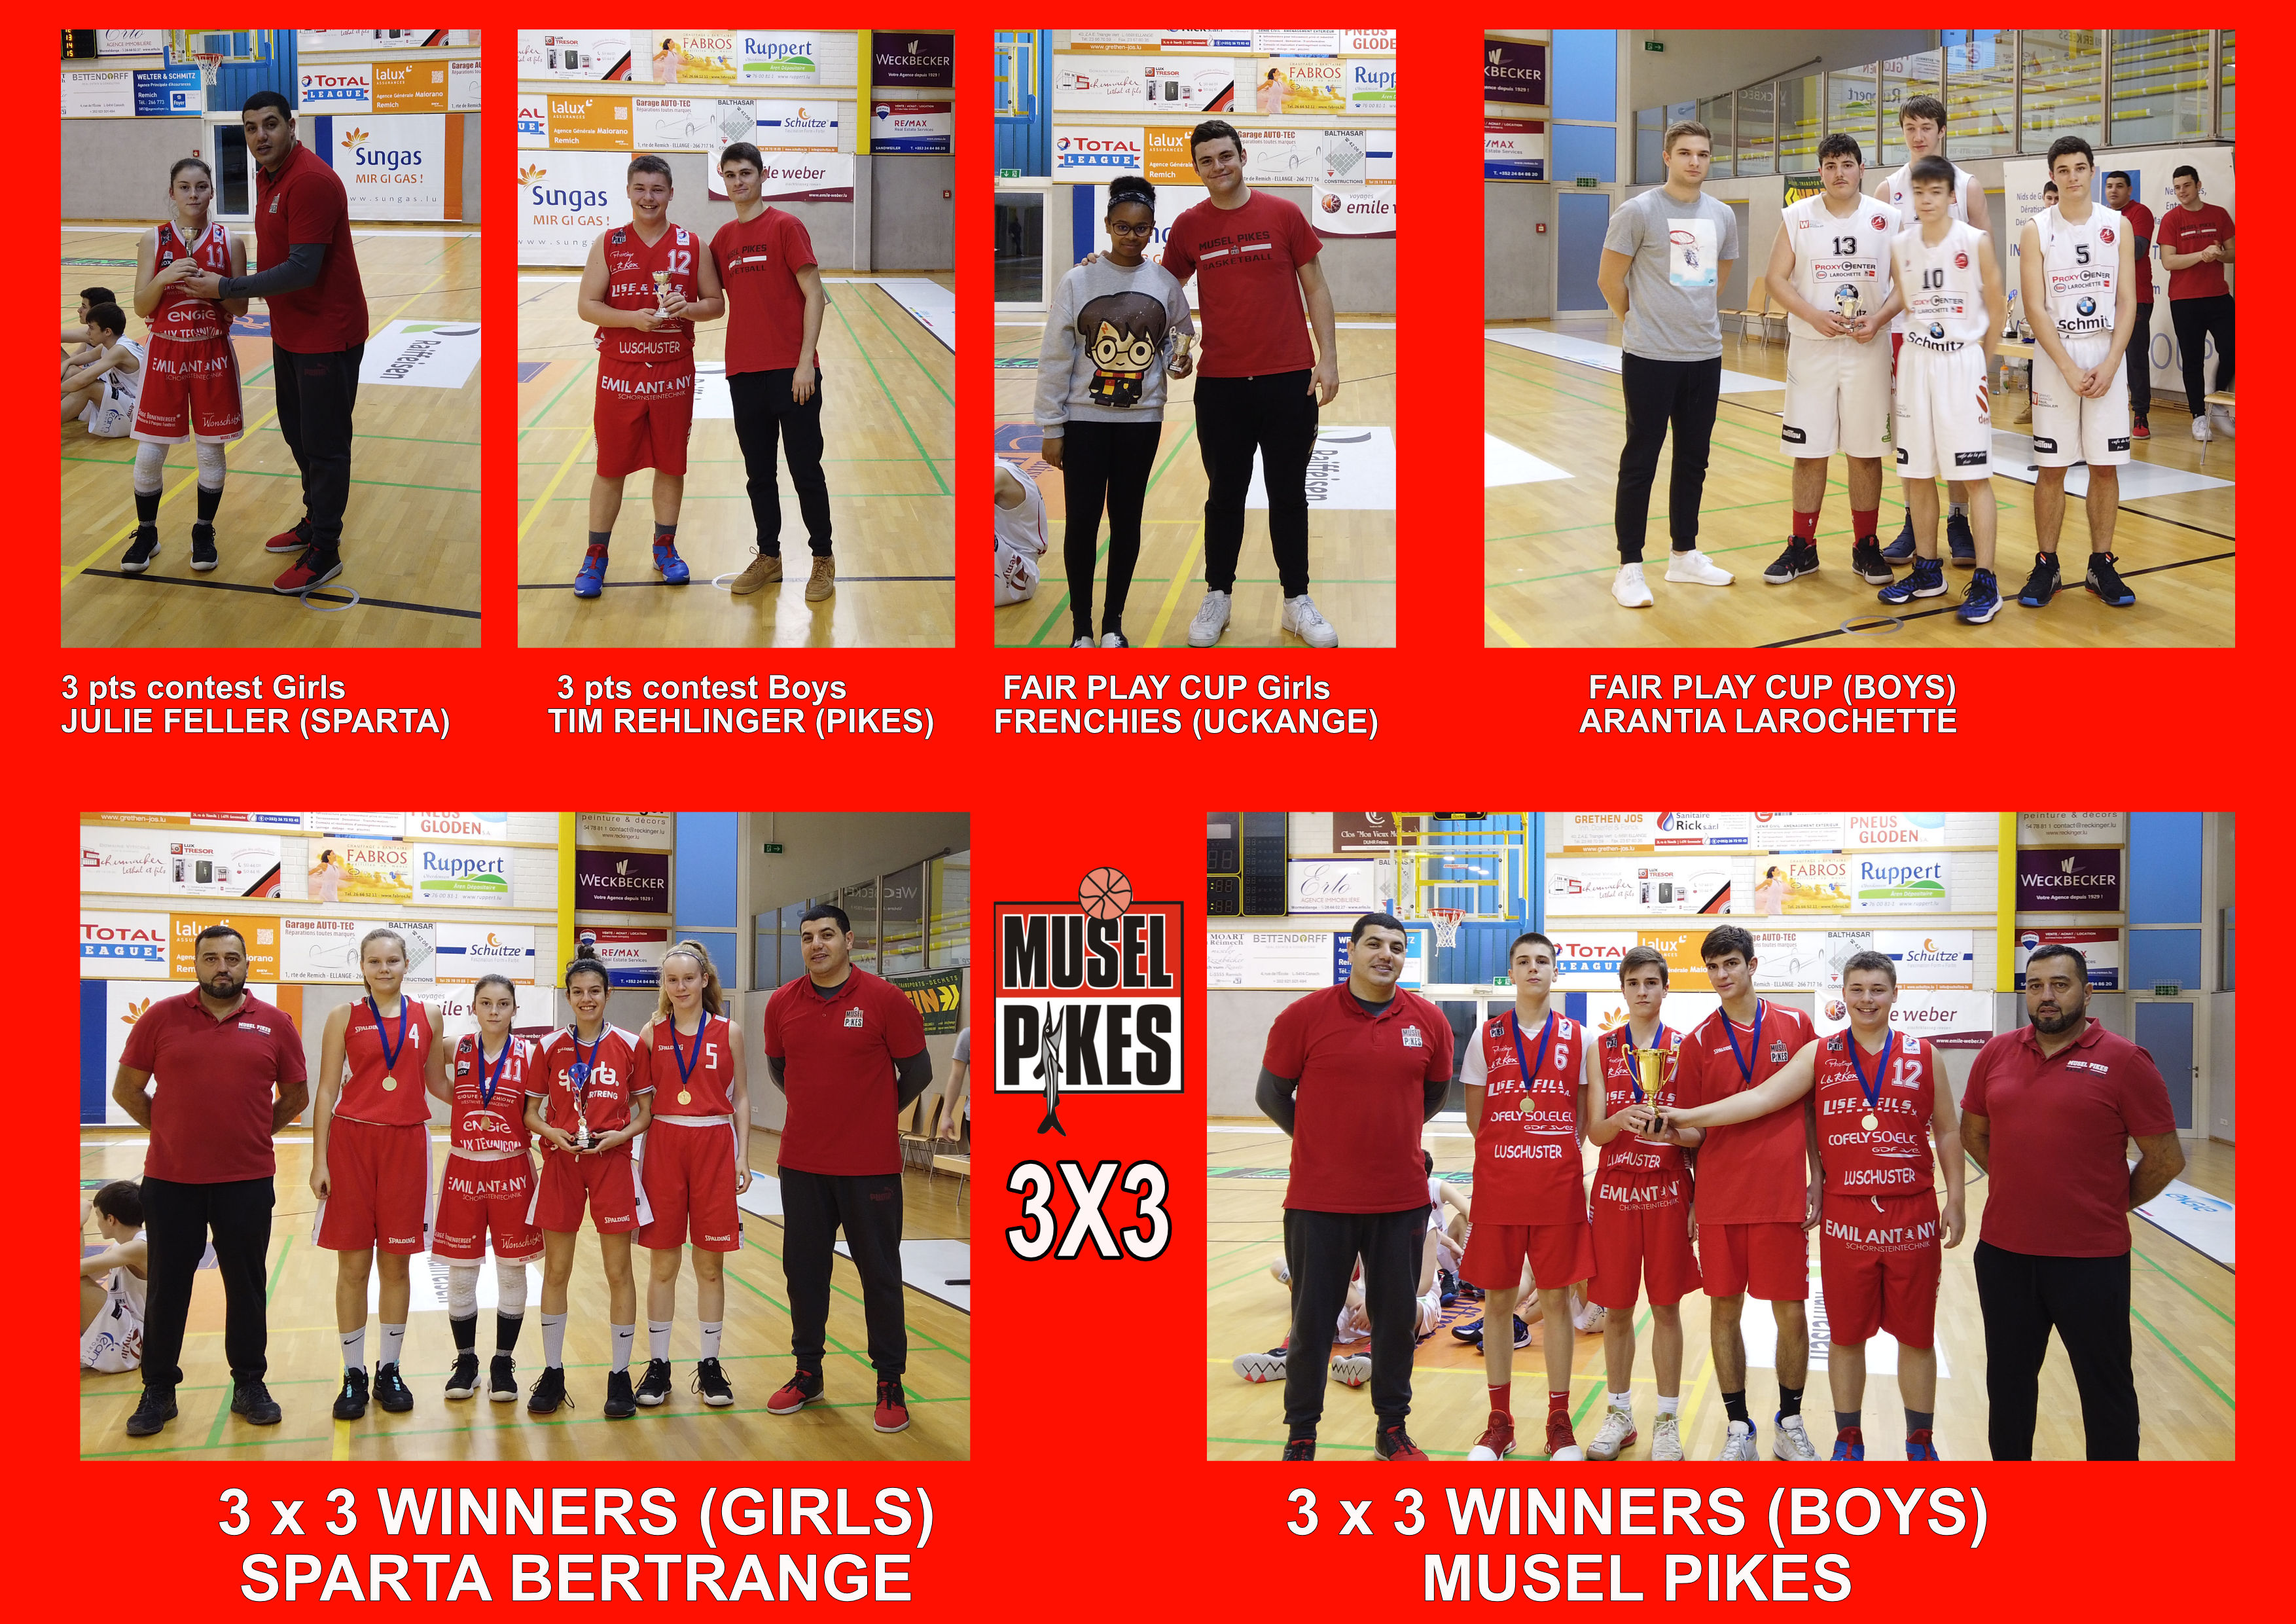 Musel Pikes 3 x 3 awards